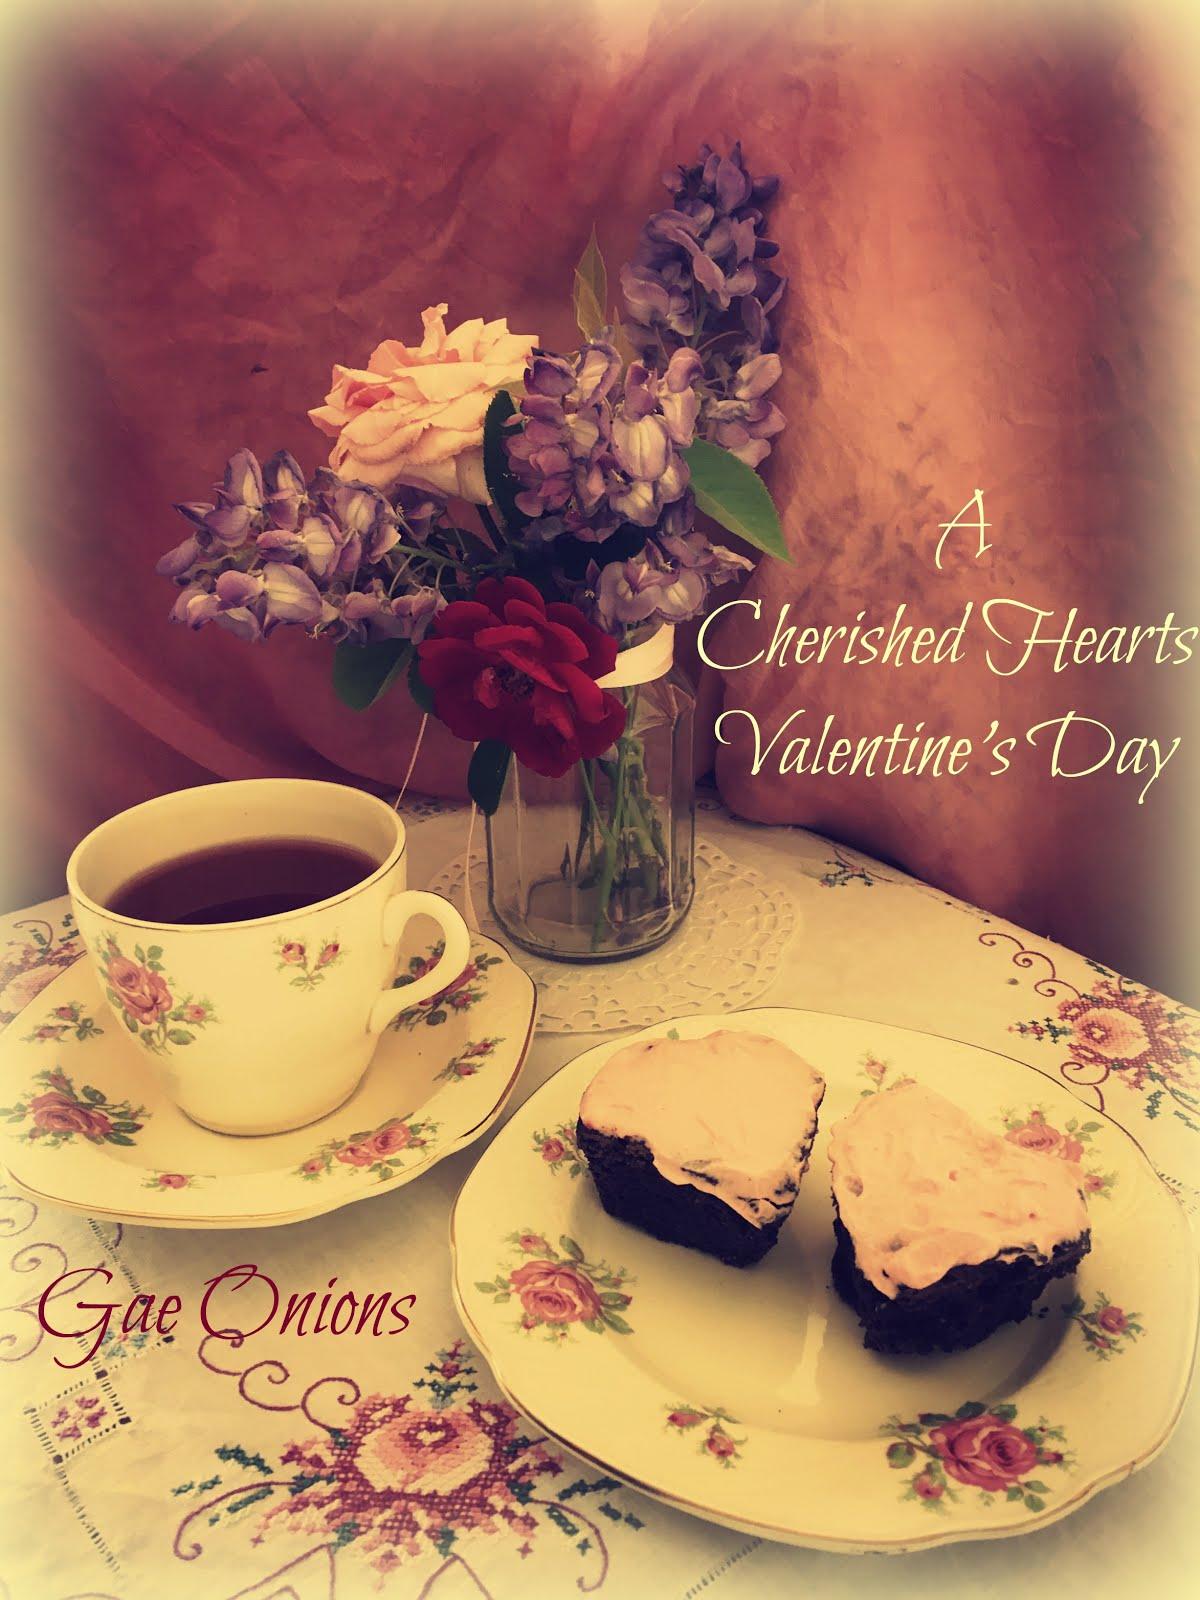 My Valentine's Day e-book!